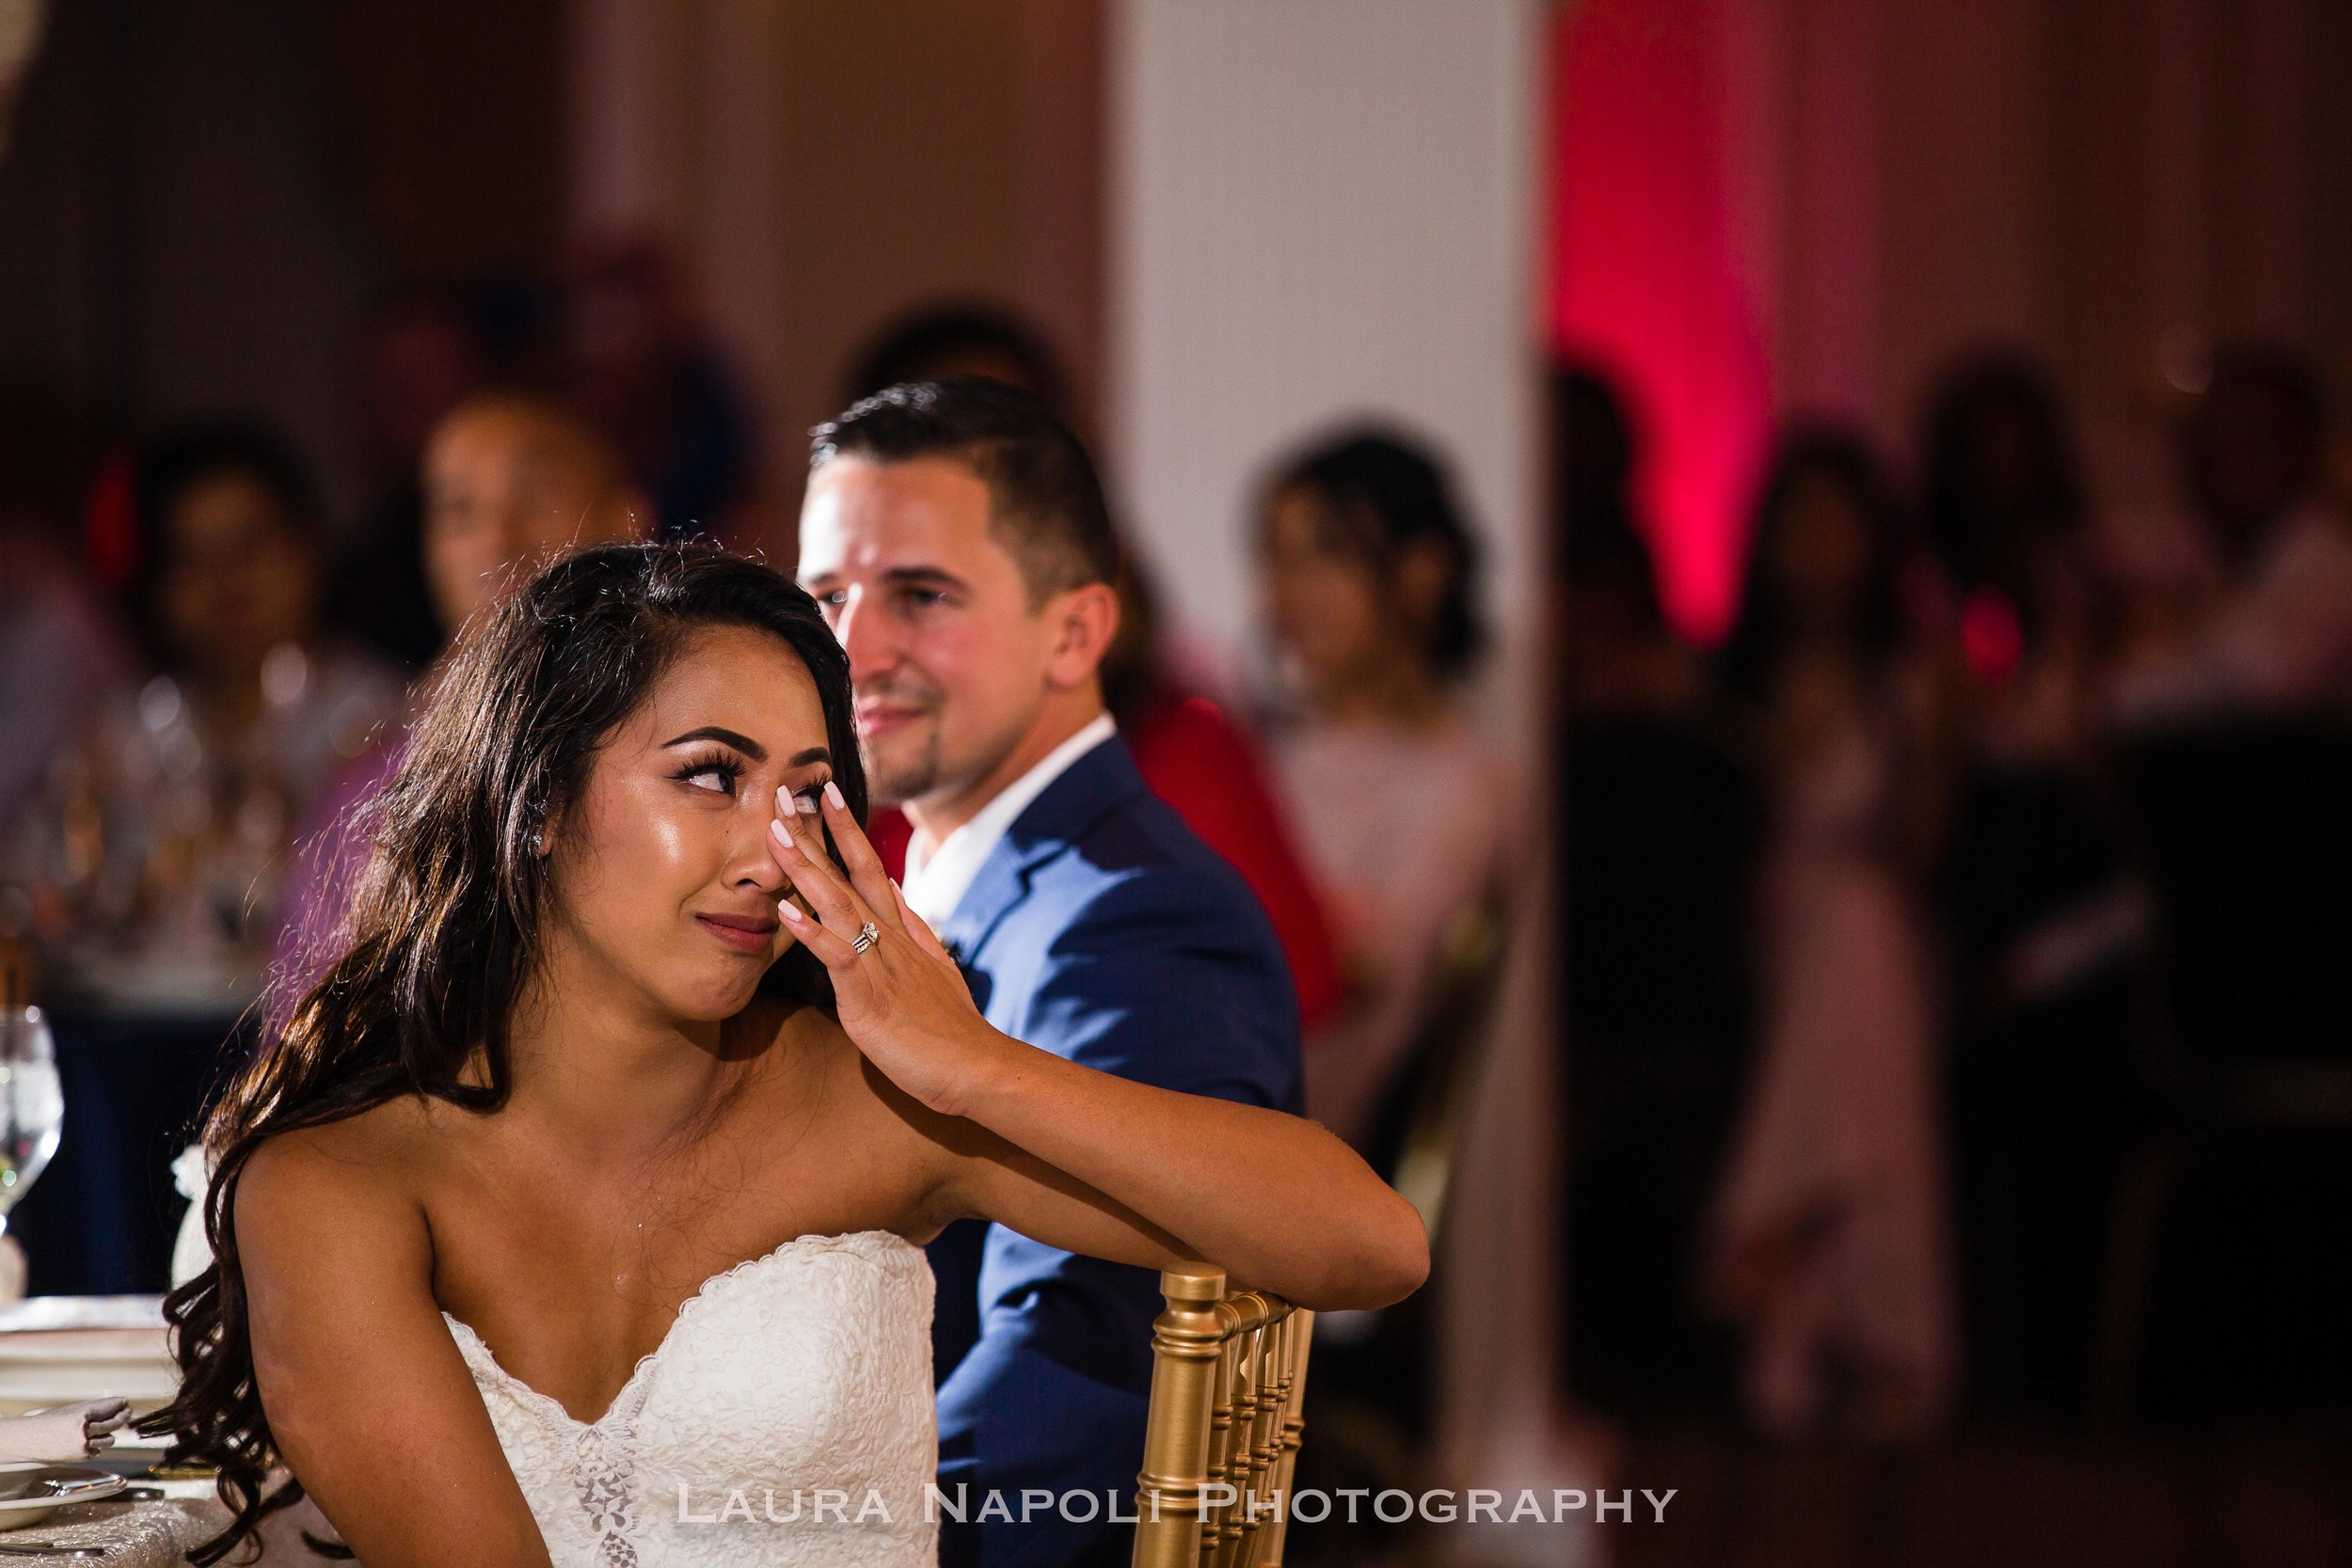 philadelphiaweddingphotographerphiladelphiaweddings-27.jpg